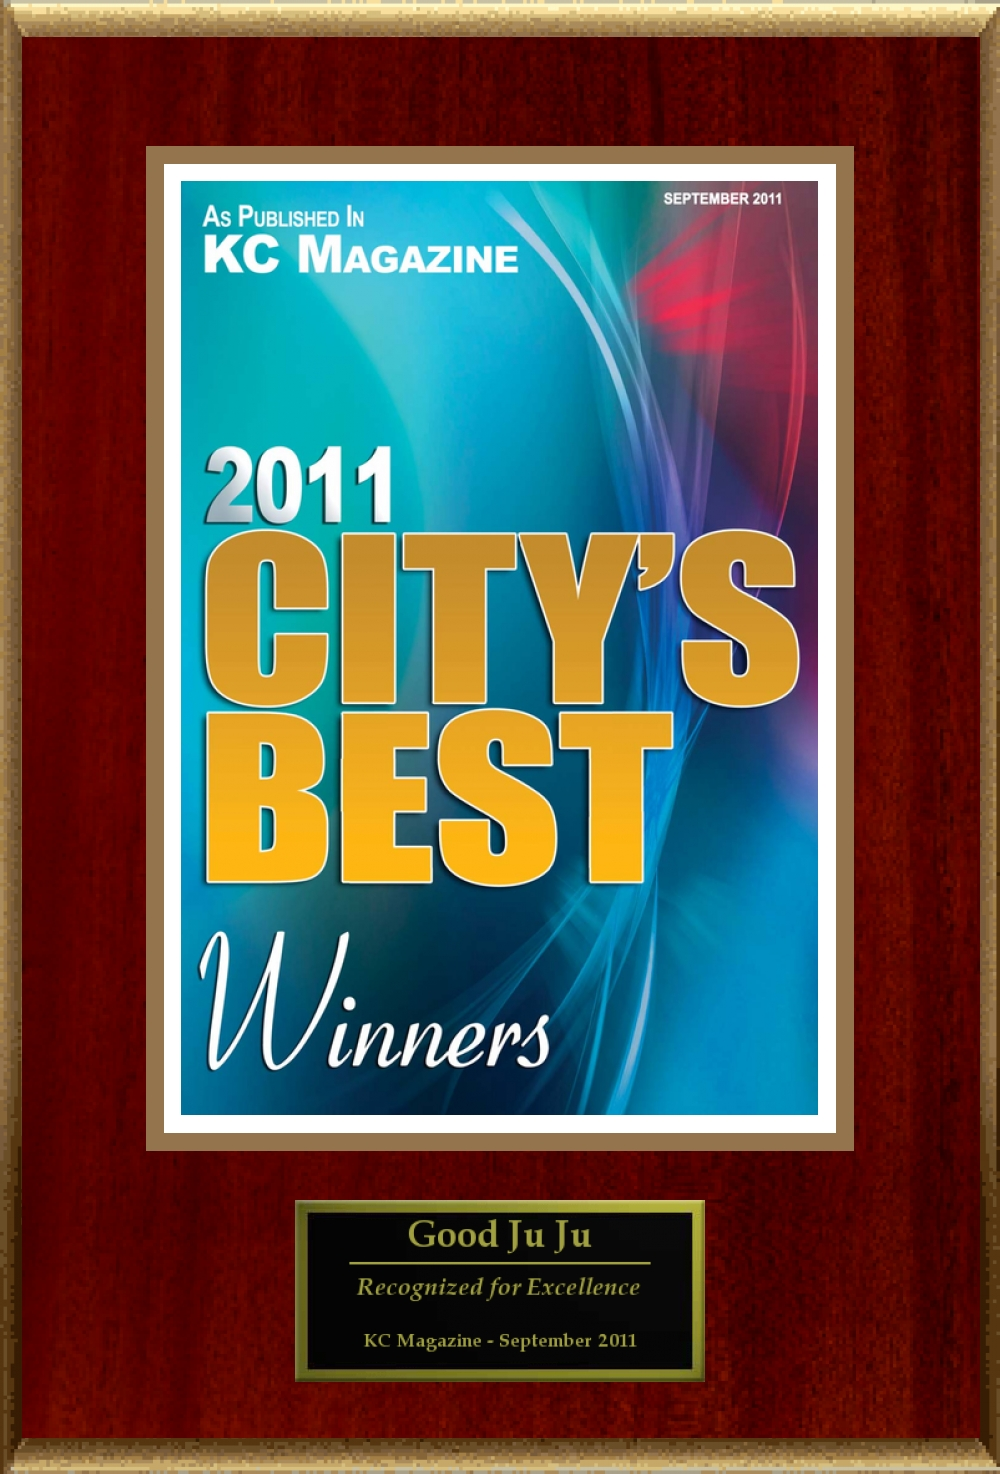 KC Magazine City's Best Award 2011